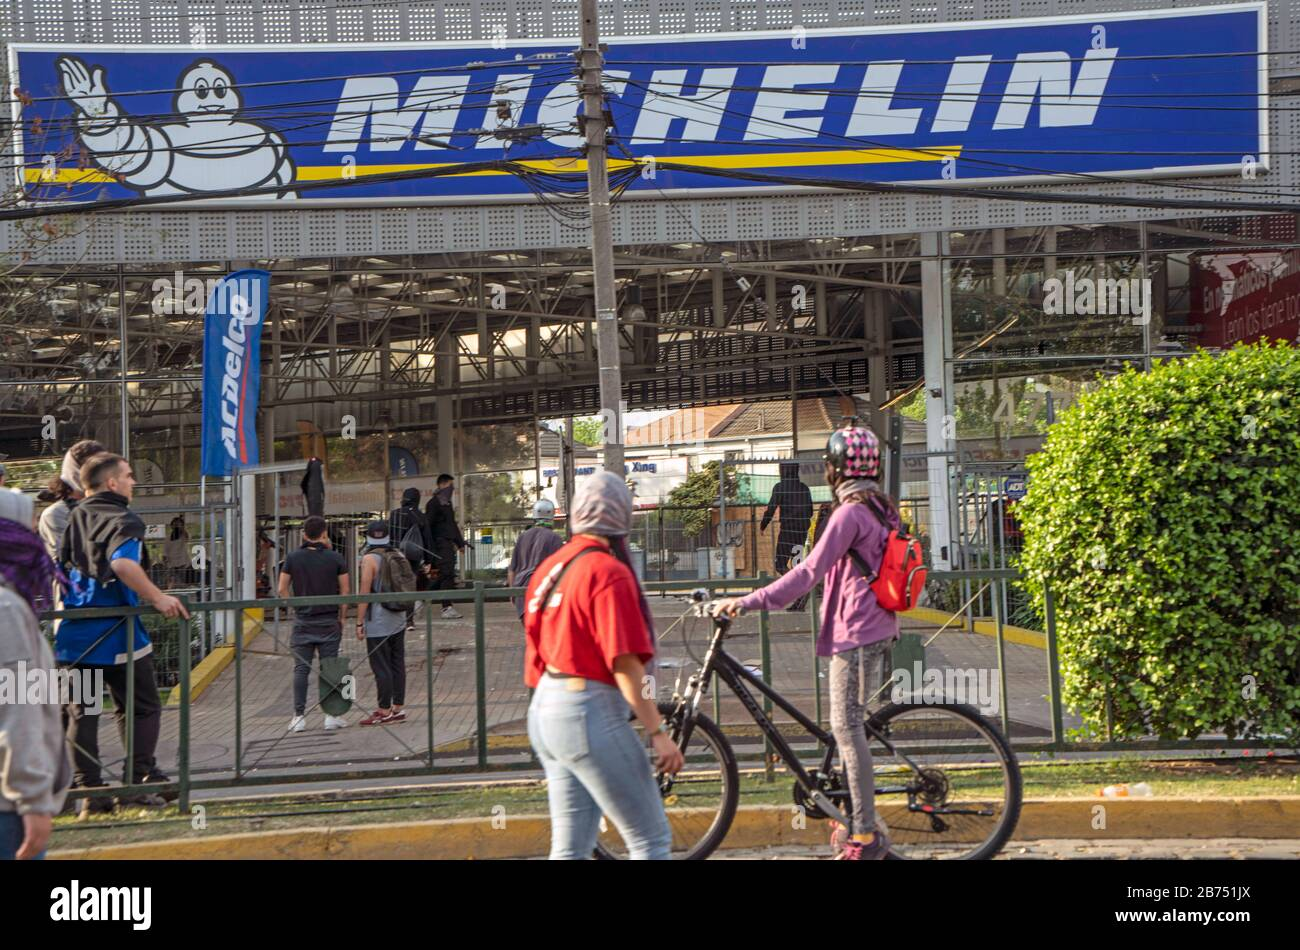 Chile, Santiago, 19.10.2019. Santiago in state of emergency on 19.10.2019. Plundering. The violent protests had started after a fare increase of the subway in Santiago. Chile's president Sebastian Piñera then declared a state of emergency on Friday evening. After renewed arson attacks on subway stations, a curfew was imposed in the Chilean capital on Saturday. [automated translation] Stock Photo